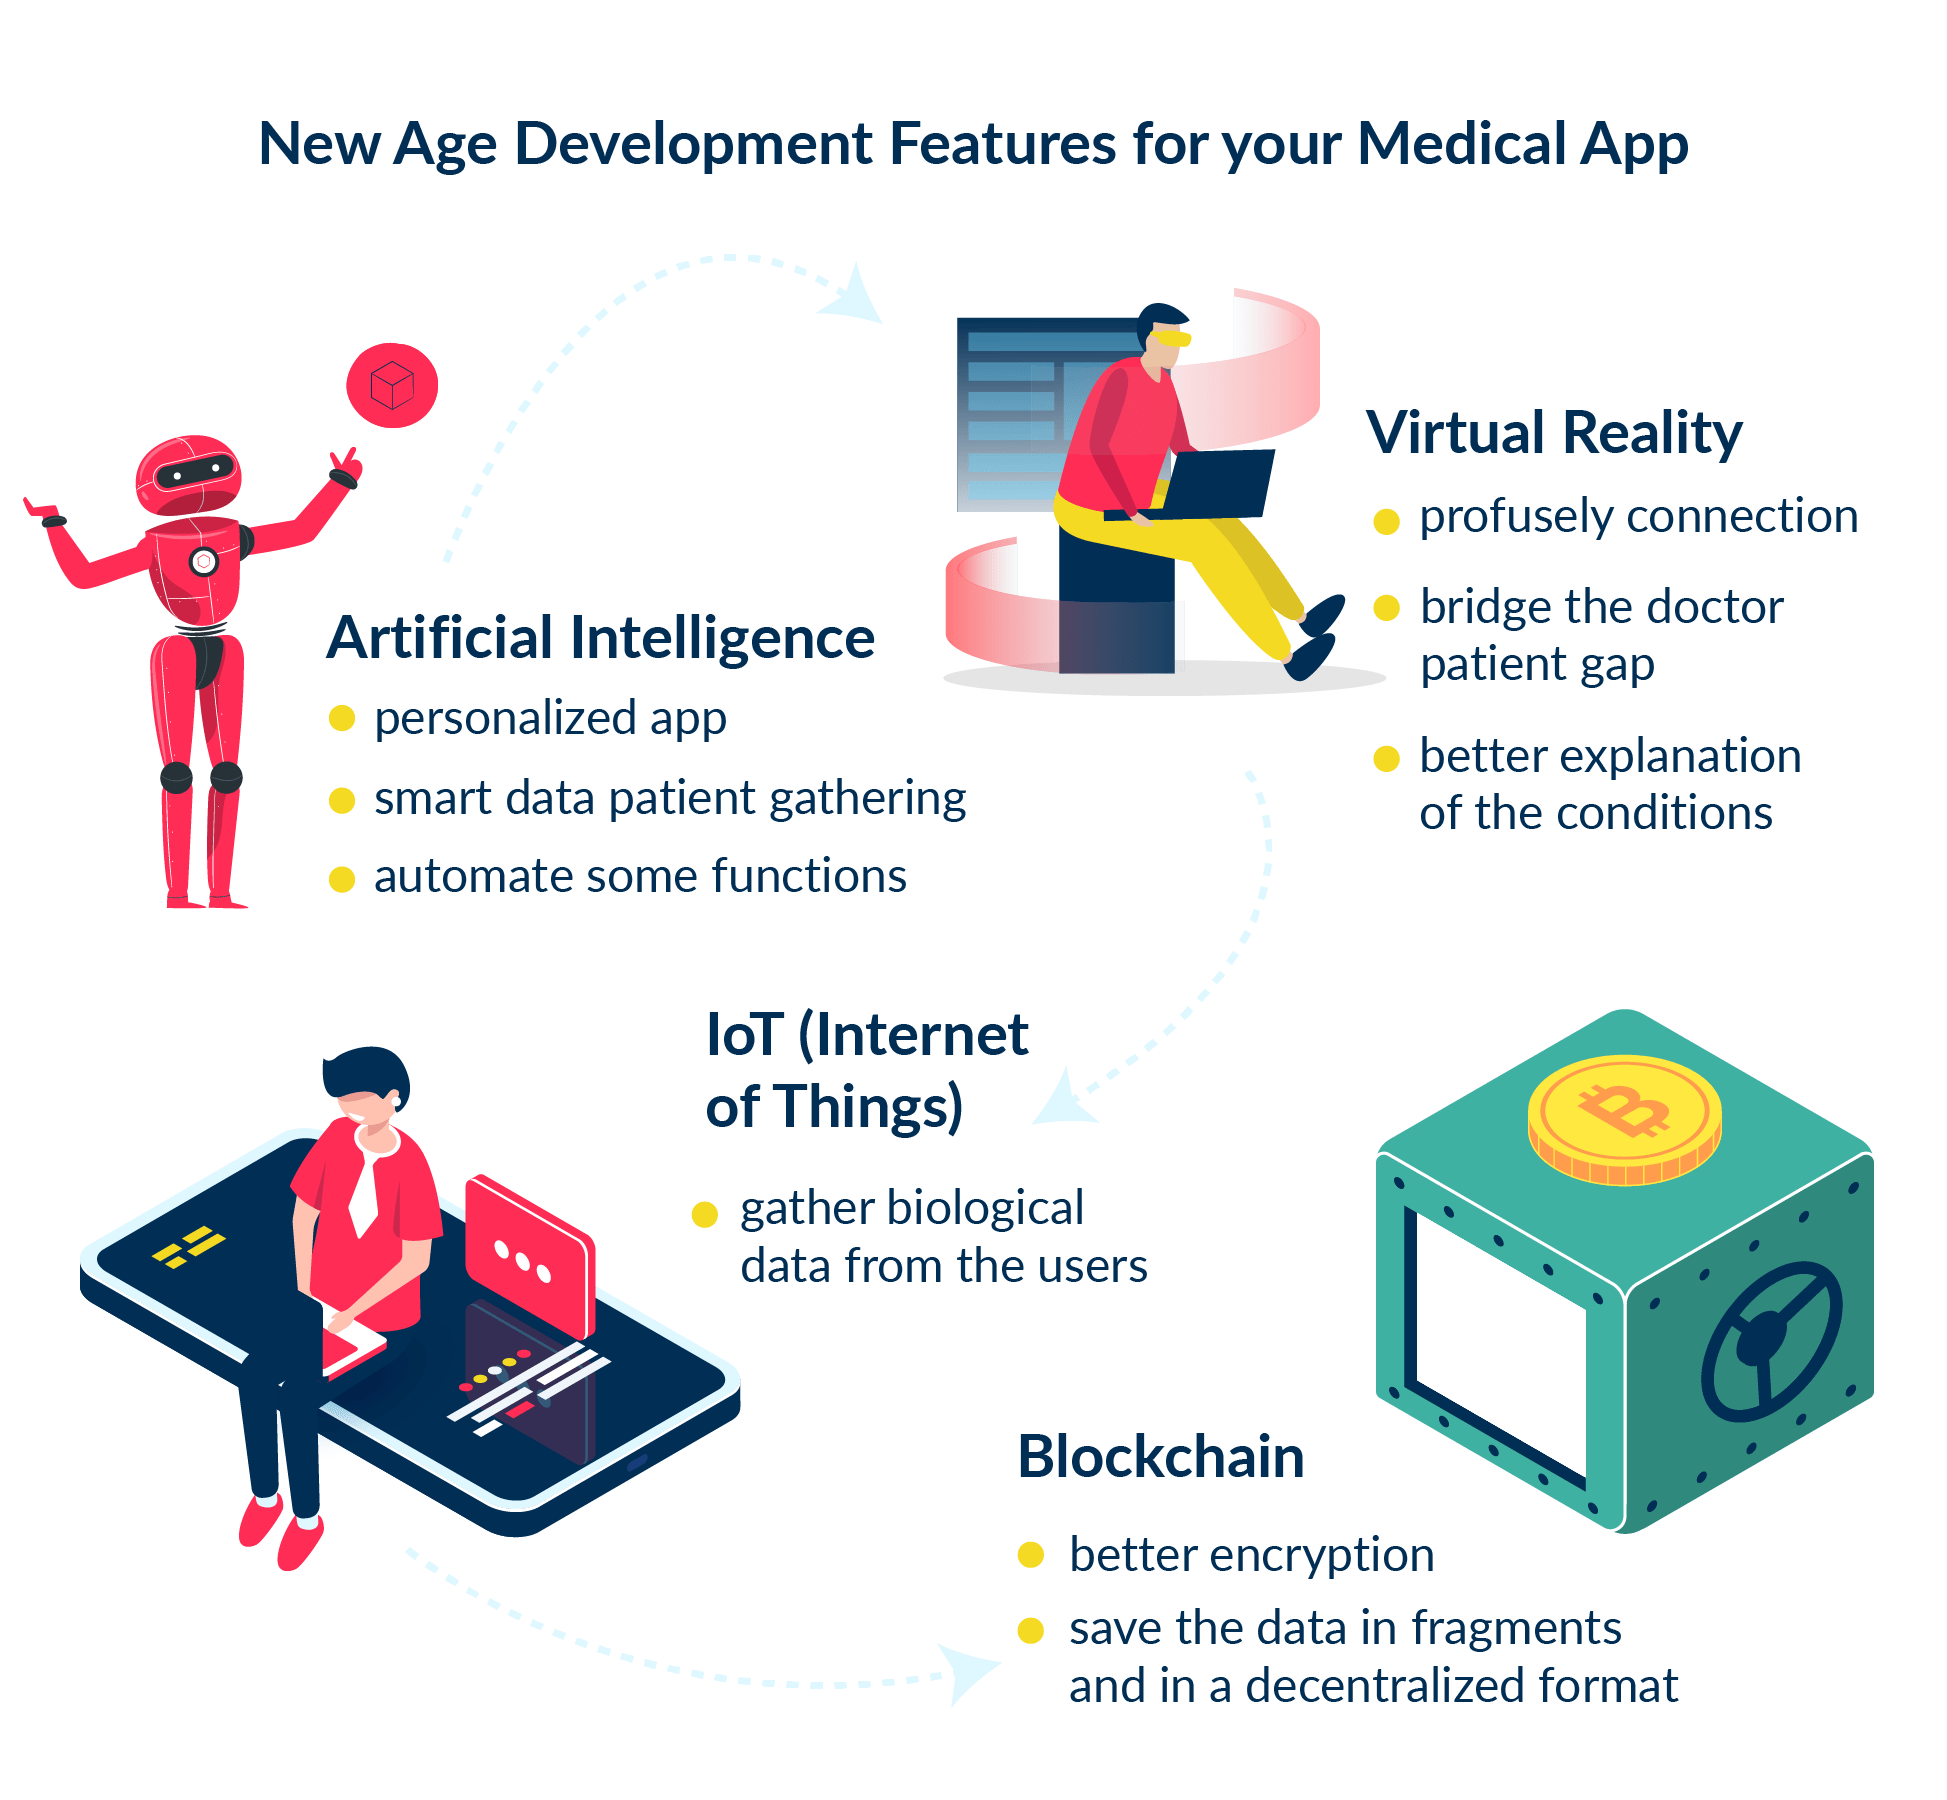 This illustration focuses on future trends and technologies that may be used in healthcare apps.